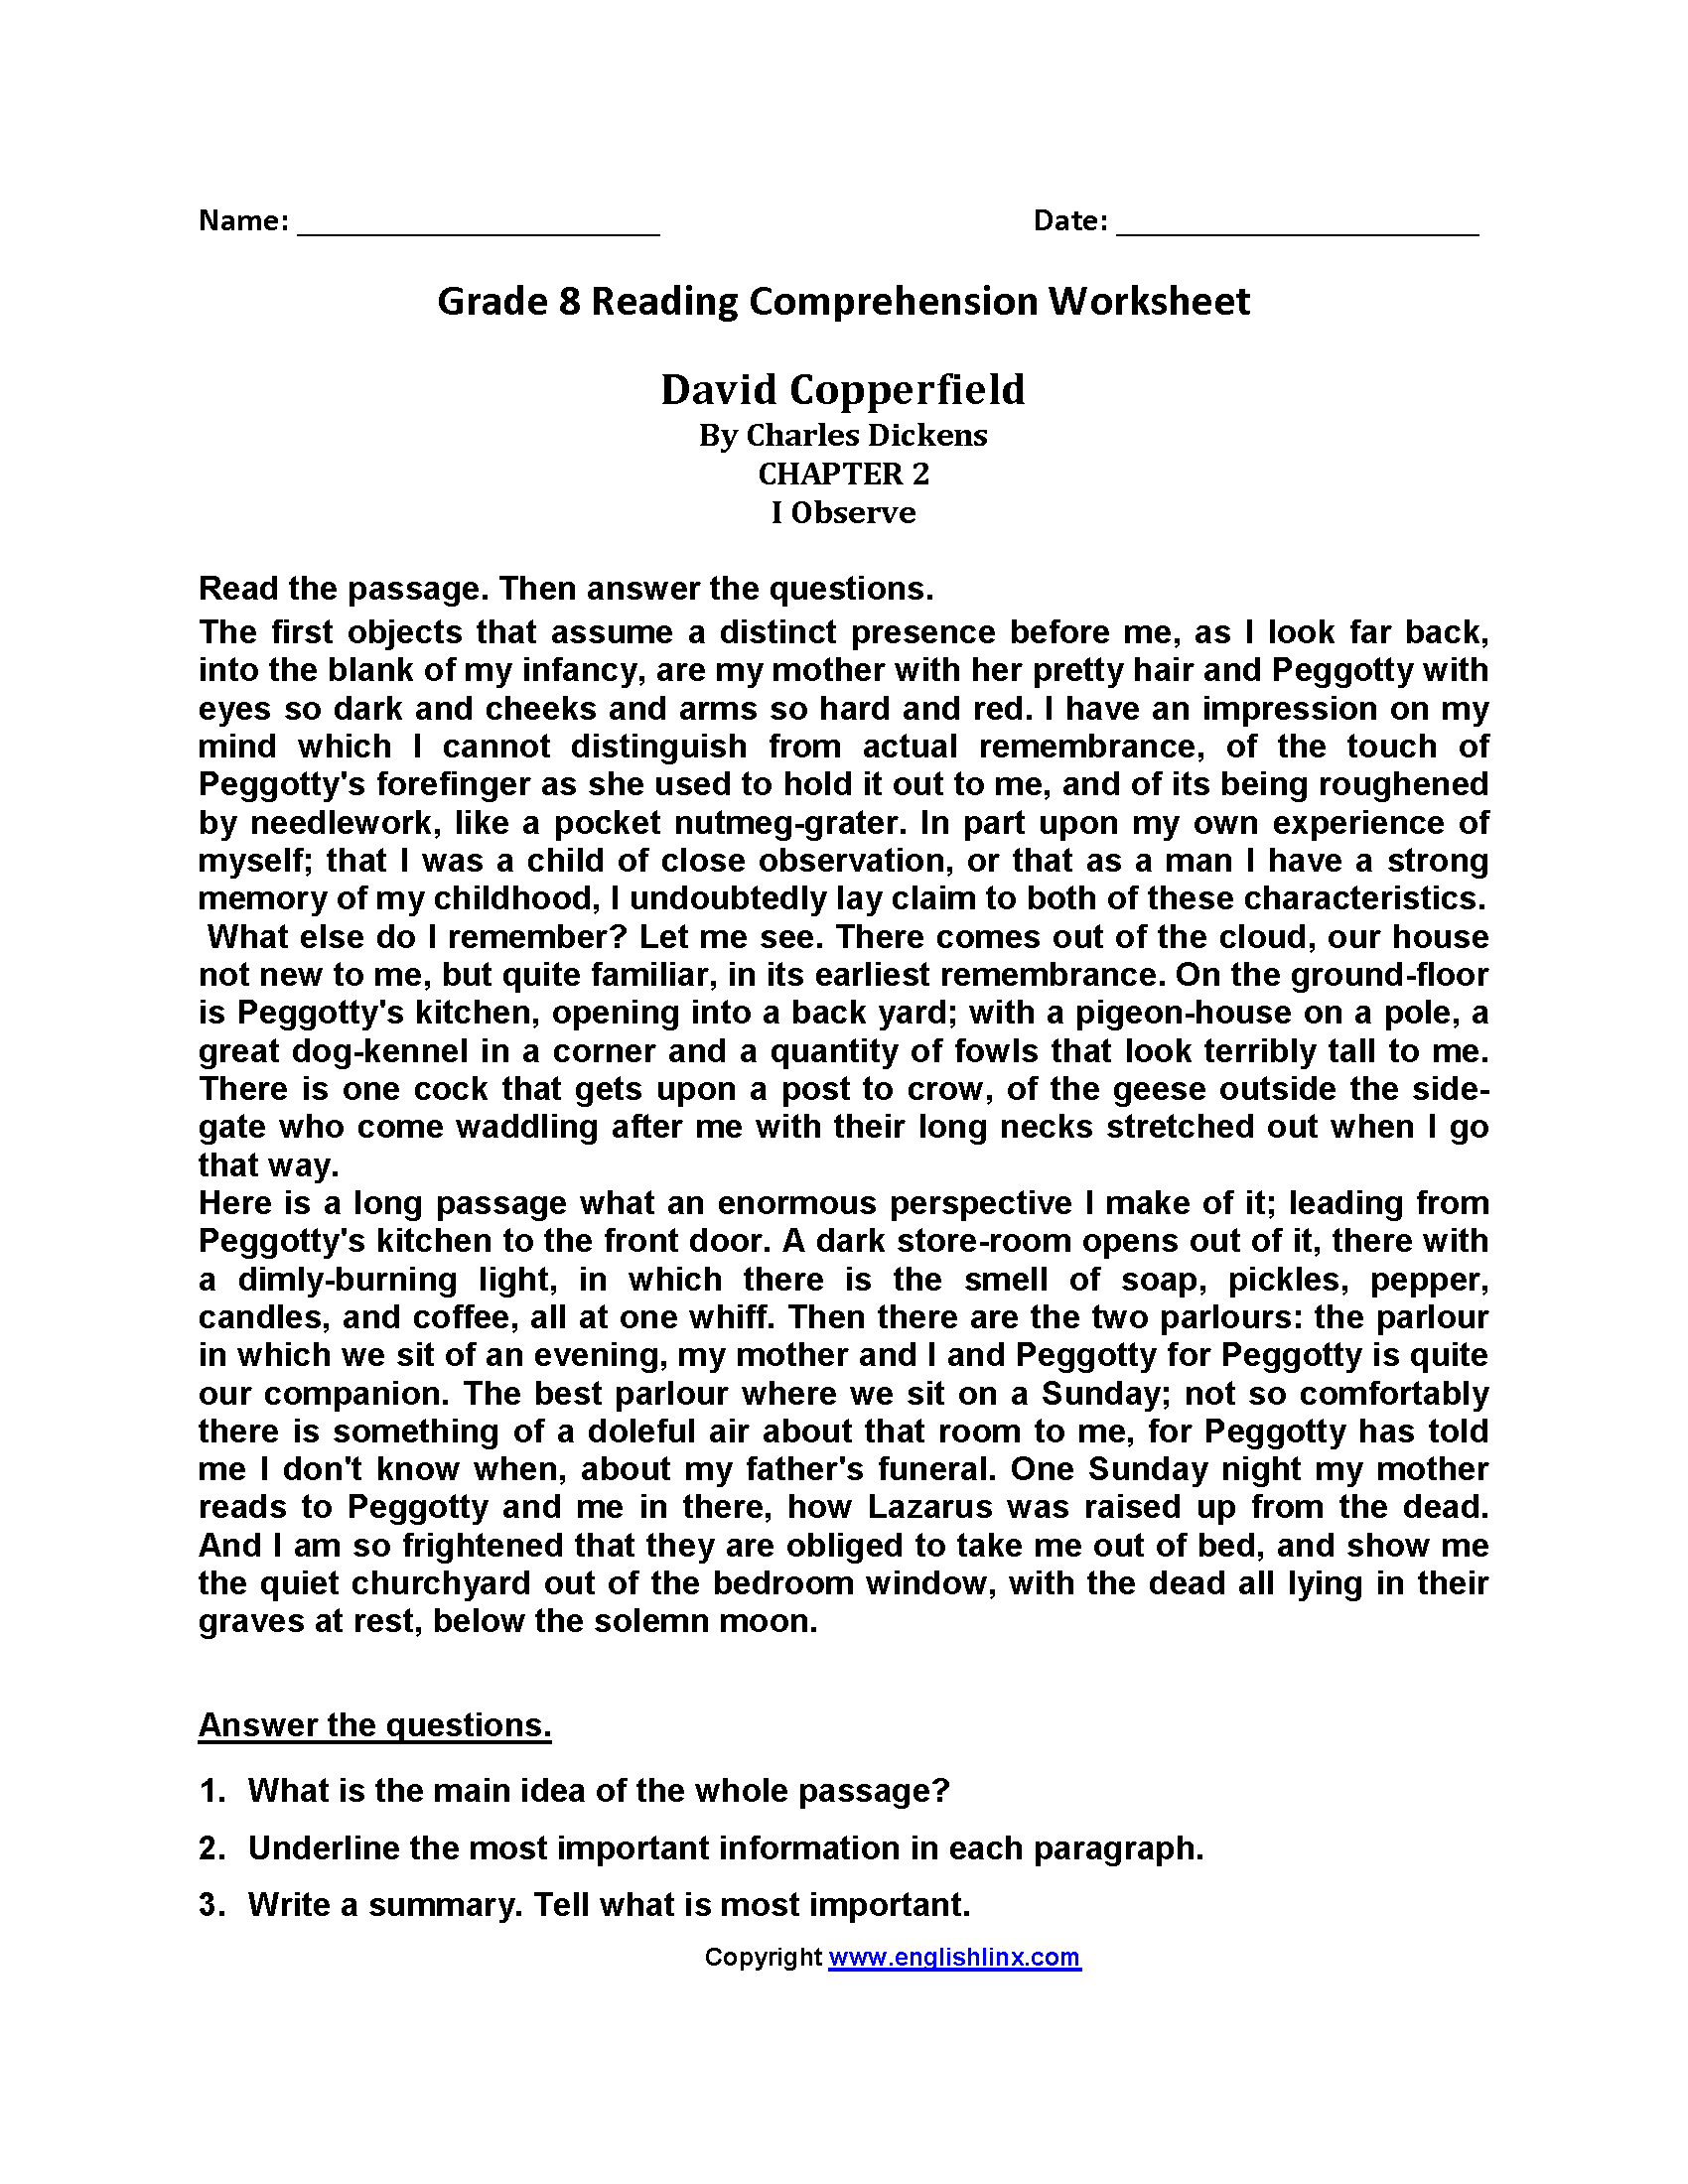 David Copperfield Eighth Grade Reading Worksheets | School idea ...